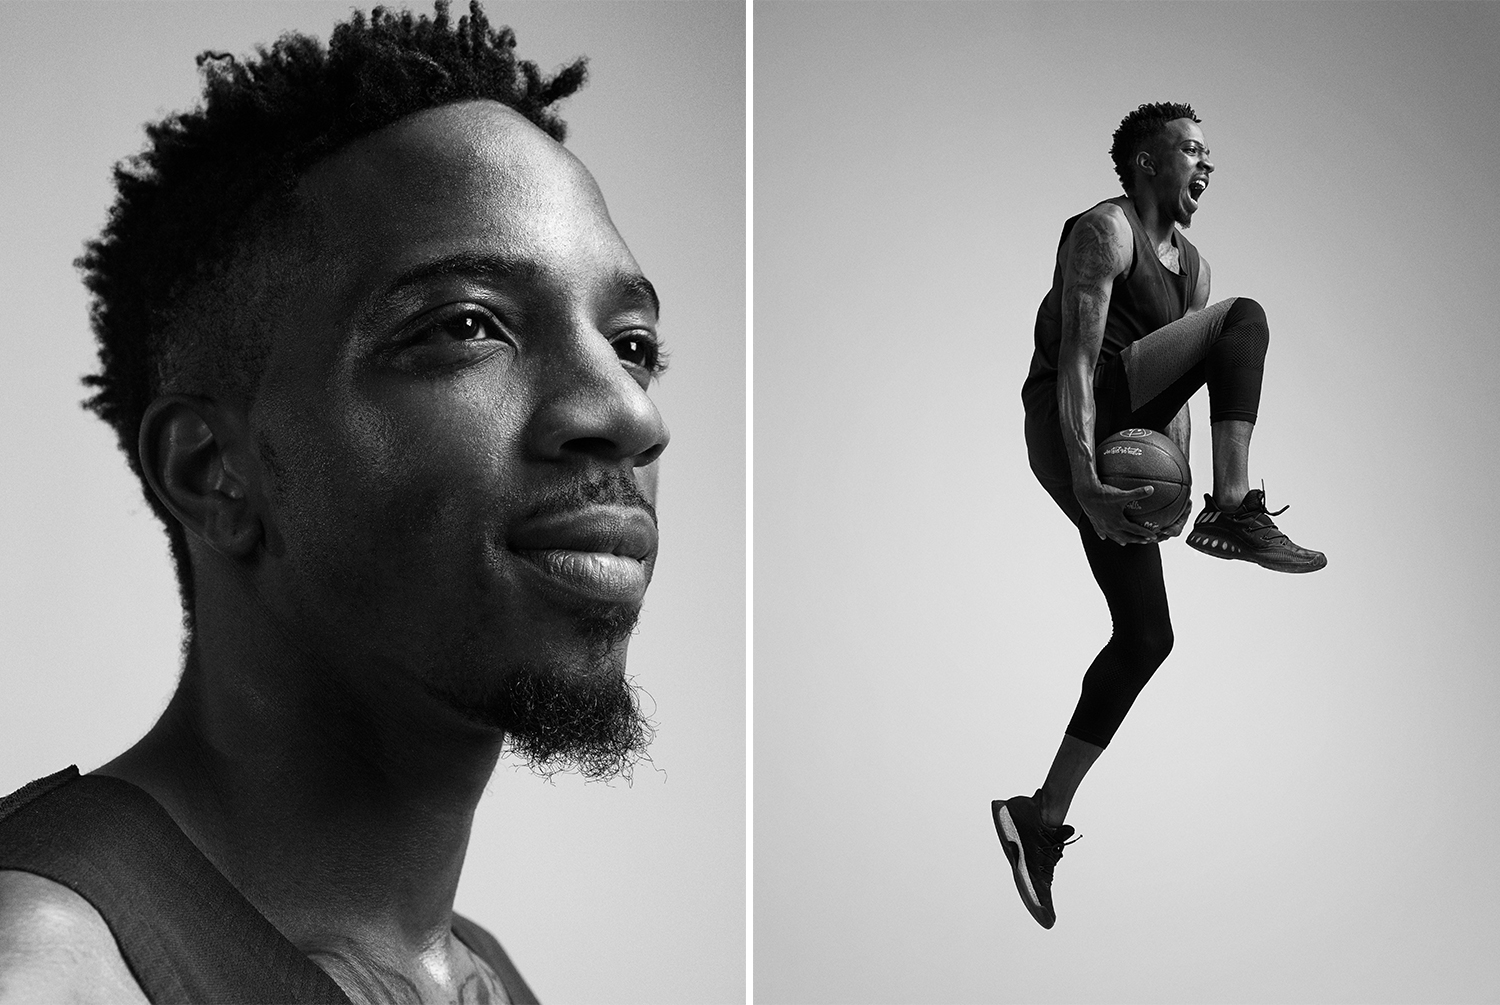 A portrait and an action shot of a Veniceball League player with in an Adidas outfit photographed by Maximilian Baier